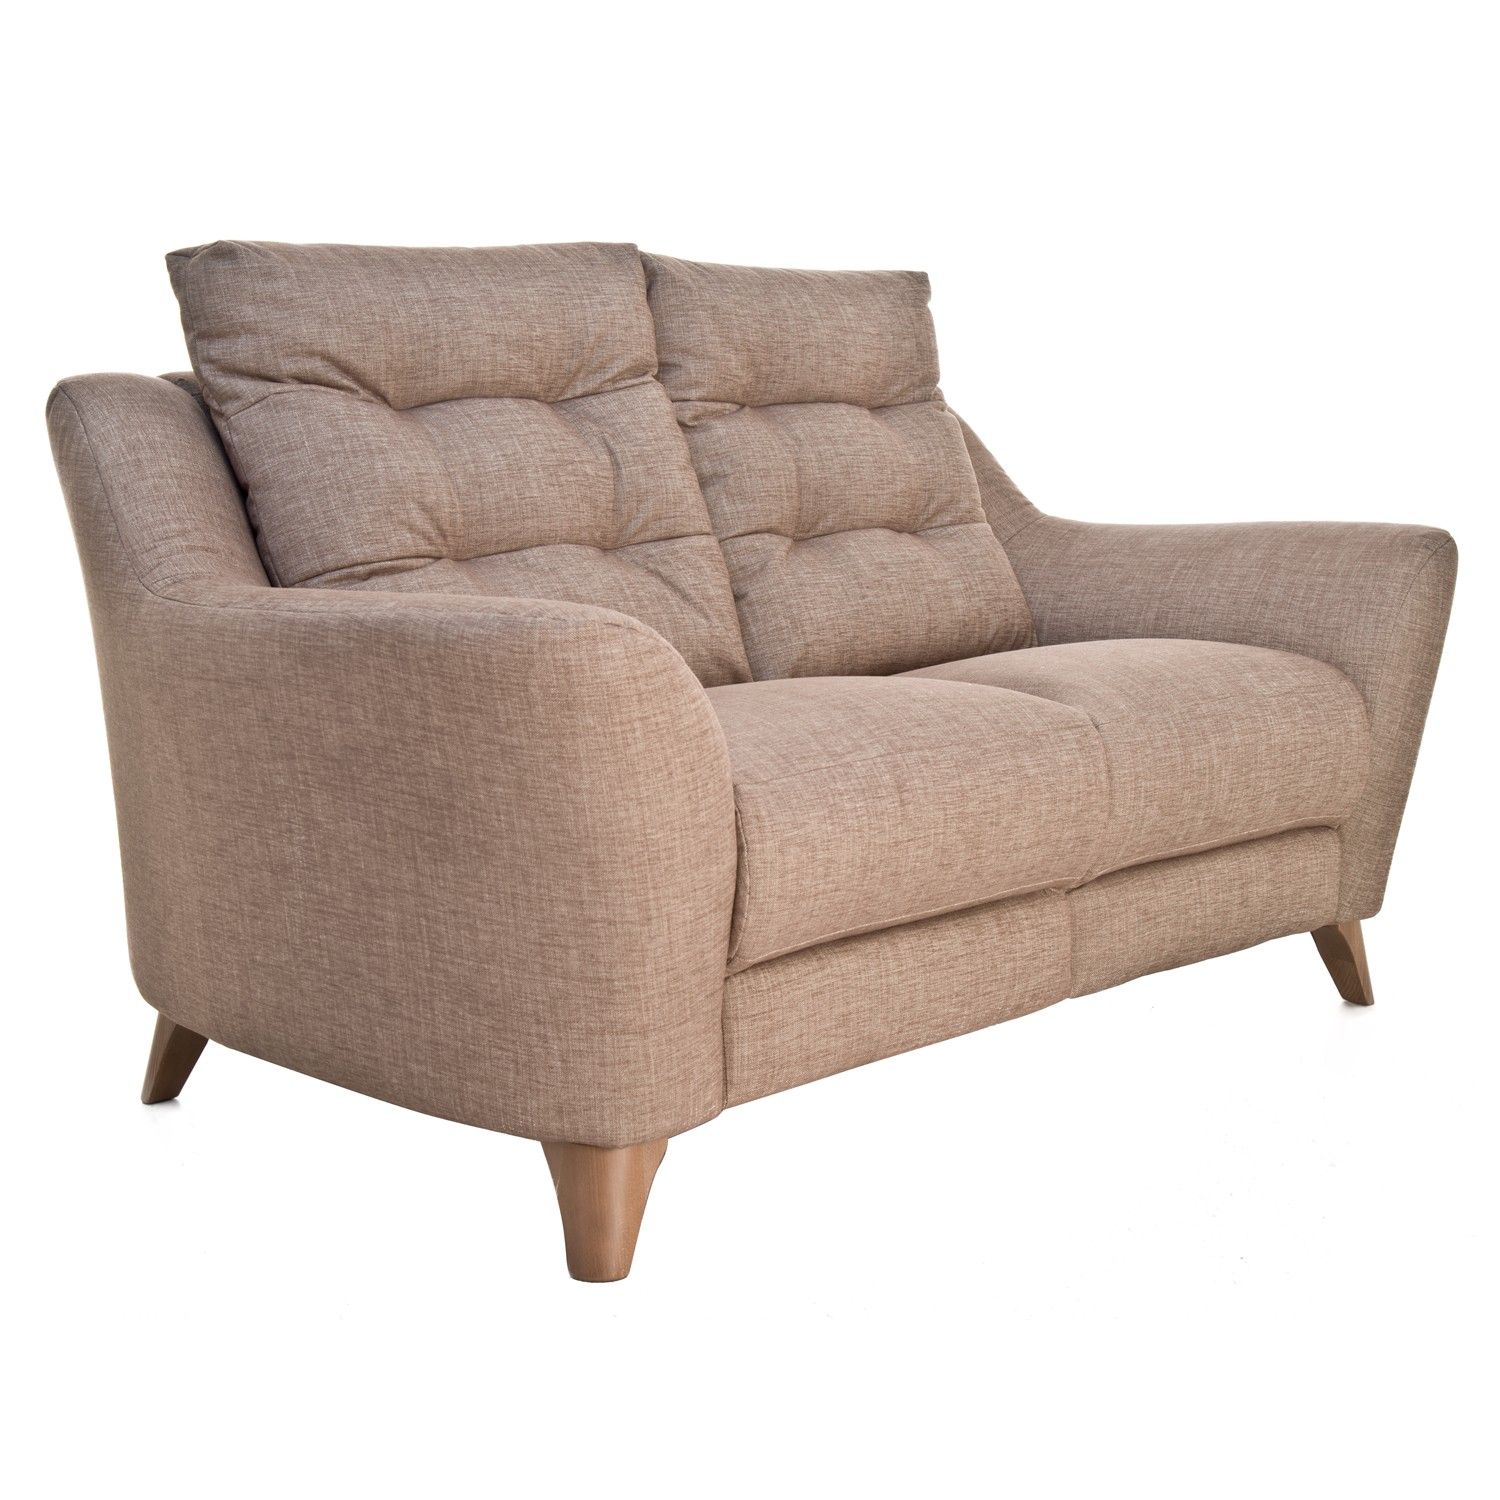 G plan pip 2 seater sofa leekes for Sofa 7 seater